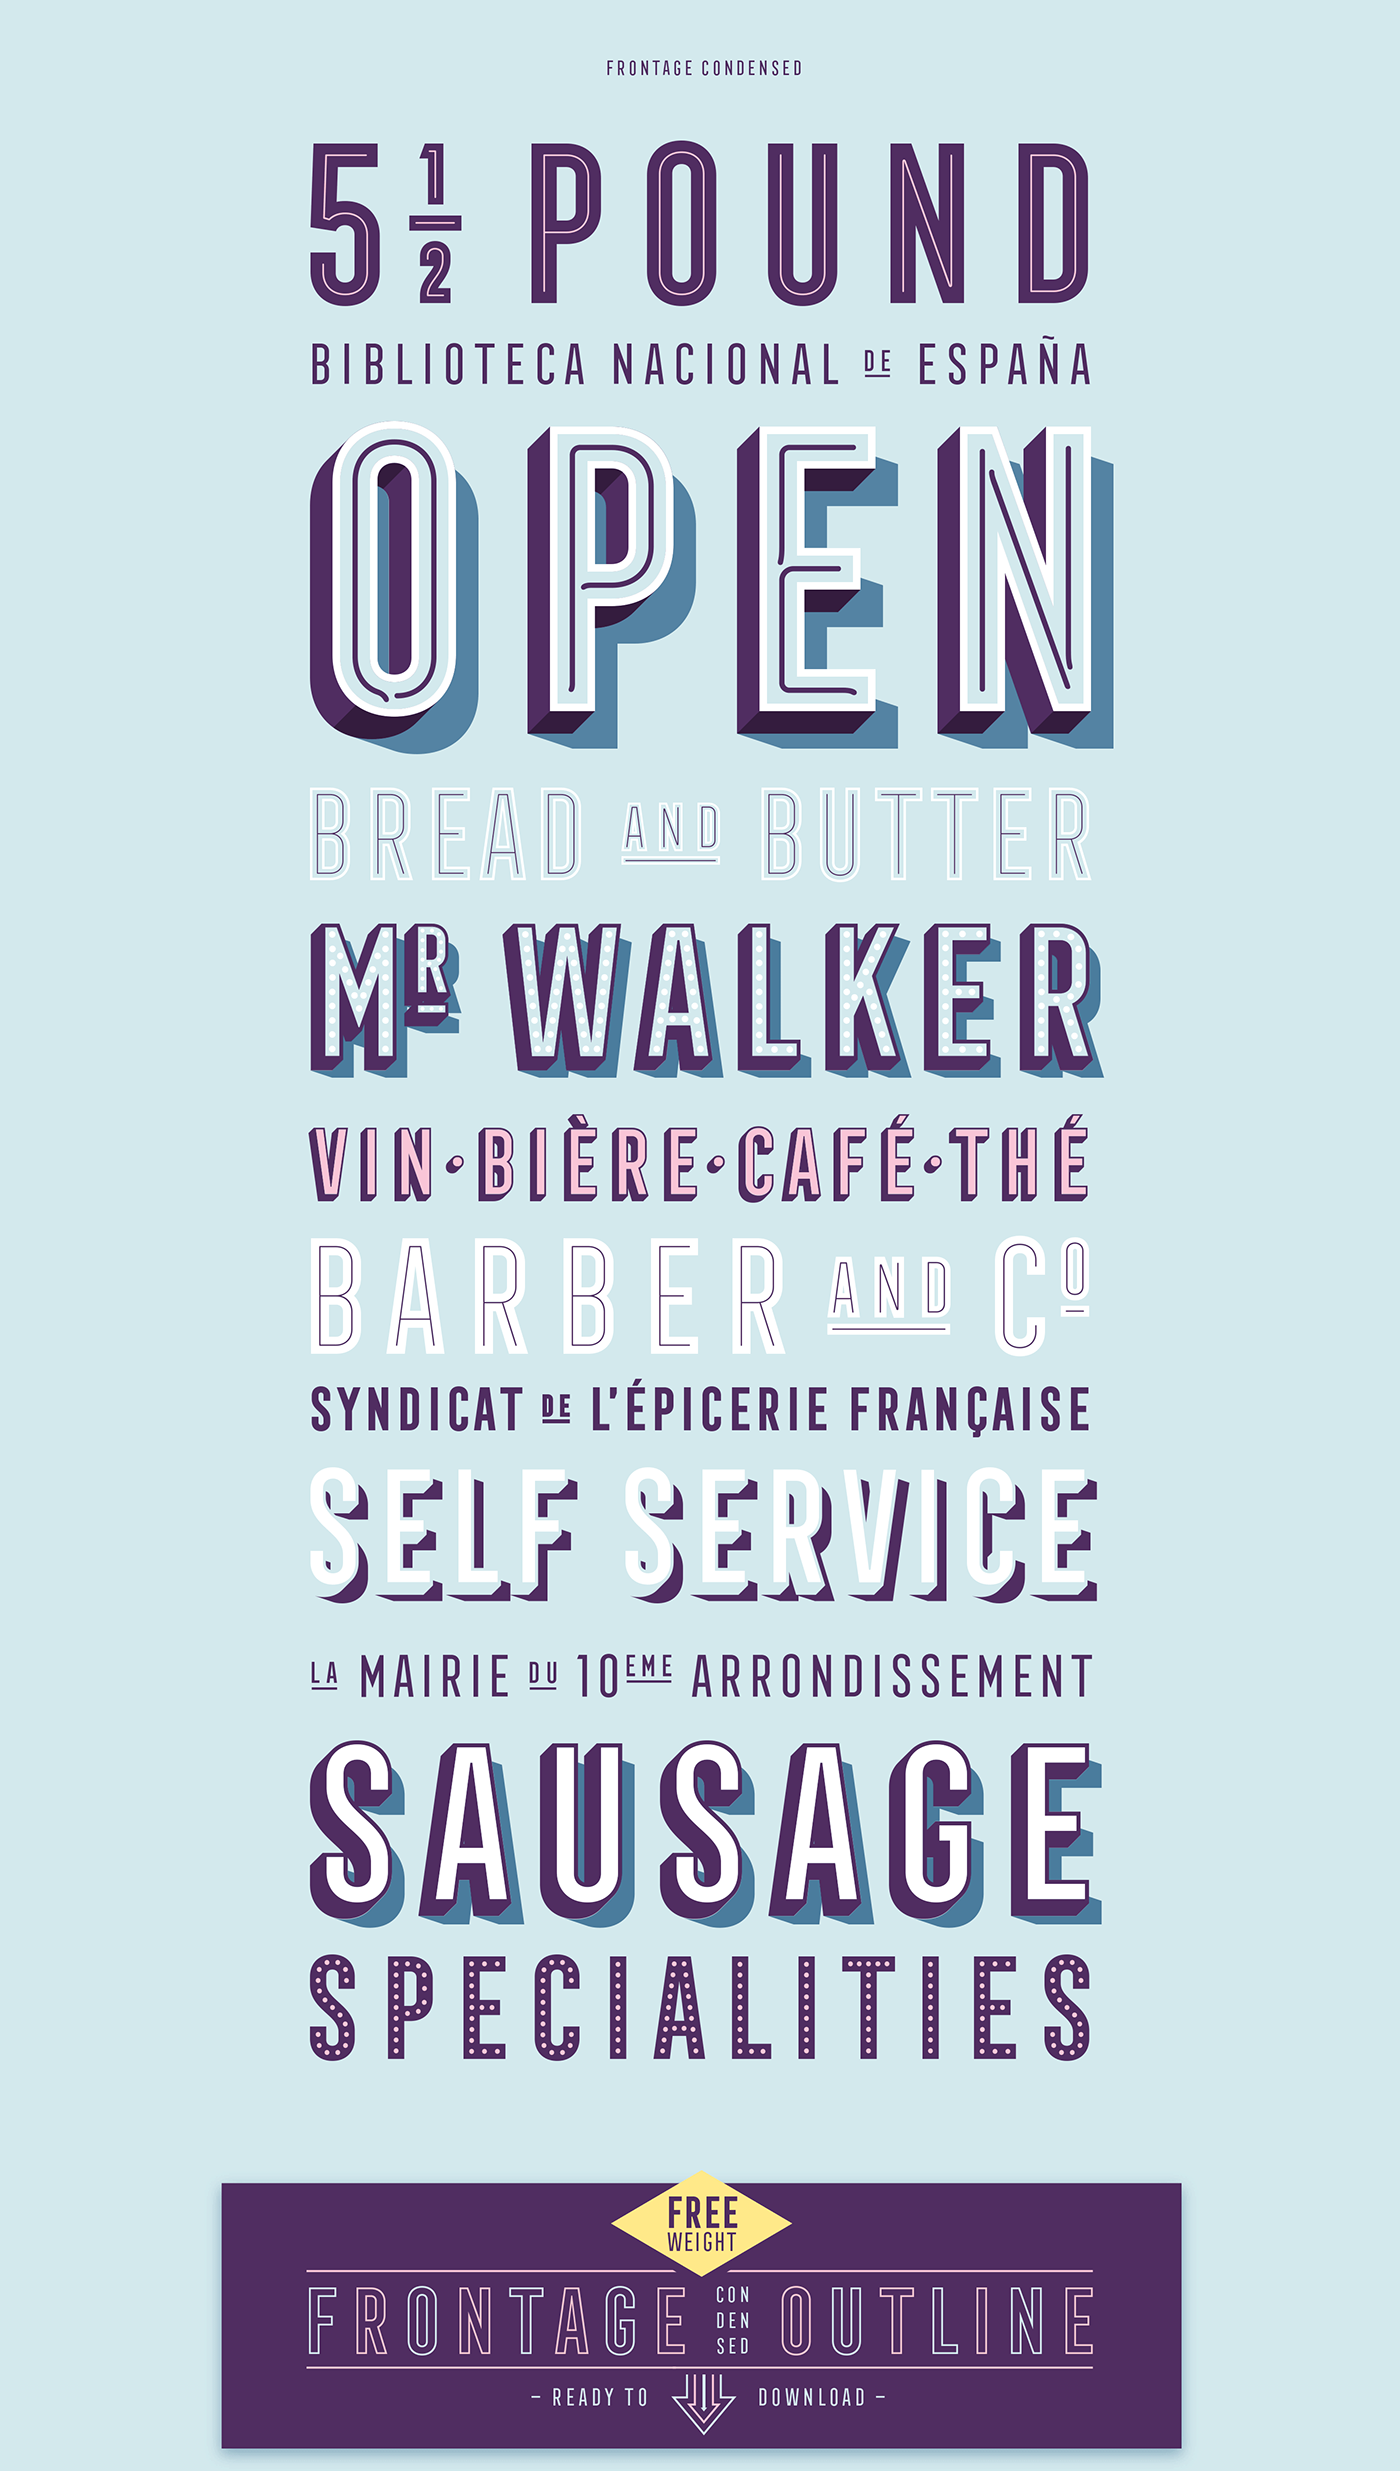 Frontage Condensed Font Family